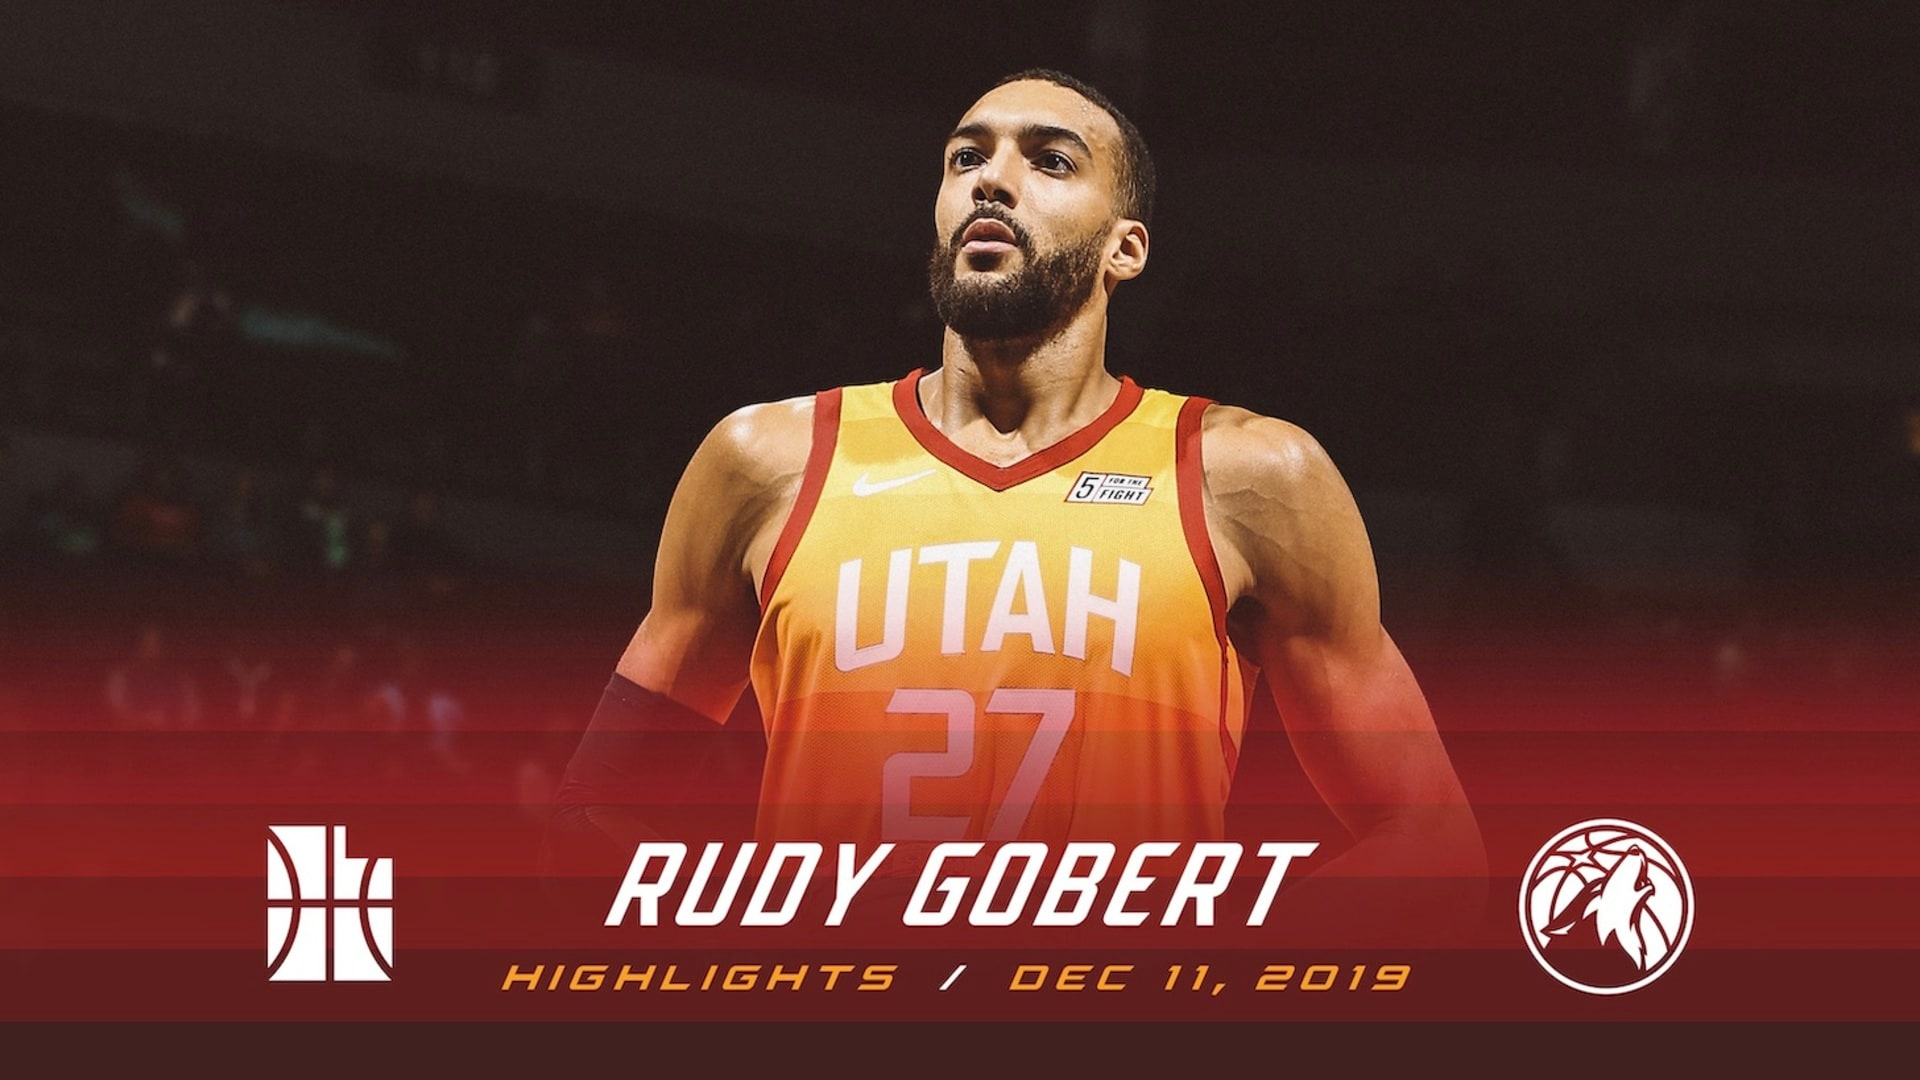 Highlights: Rudy Gobert — 20 points, 16 rebounds